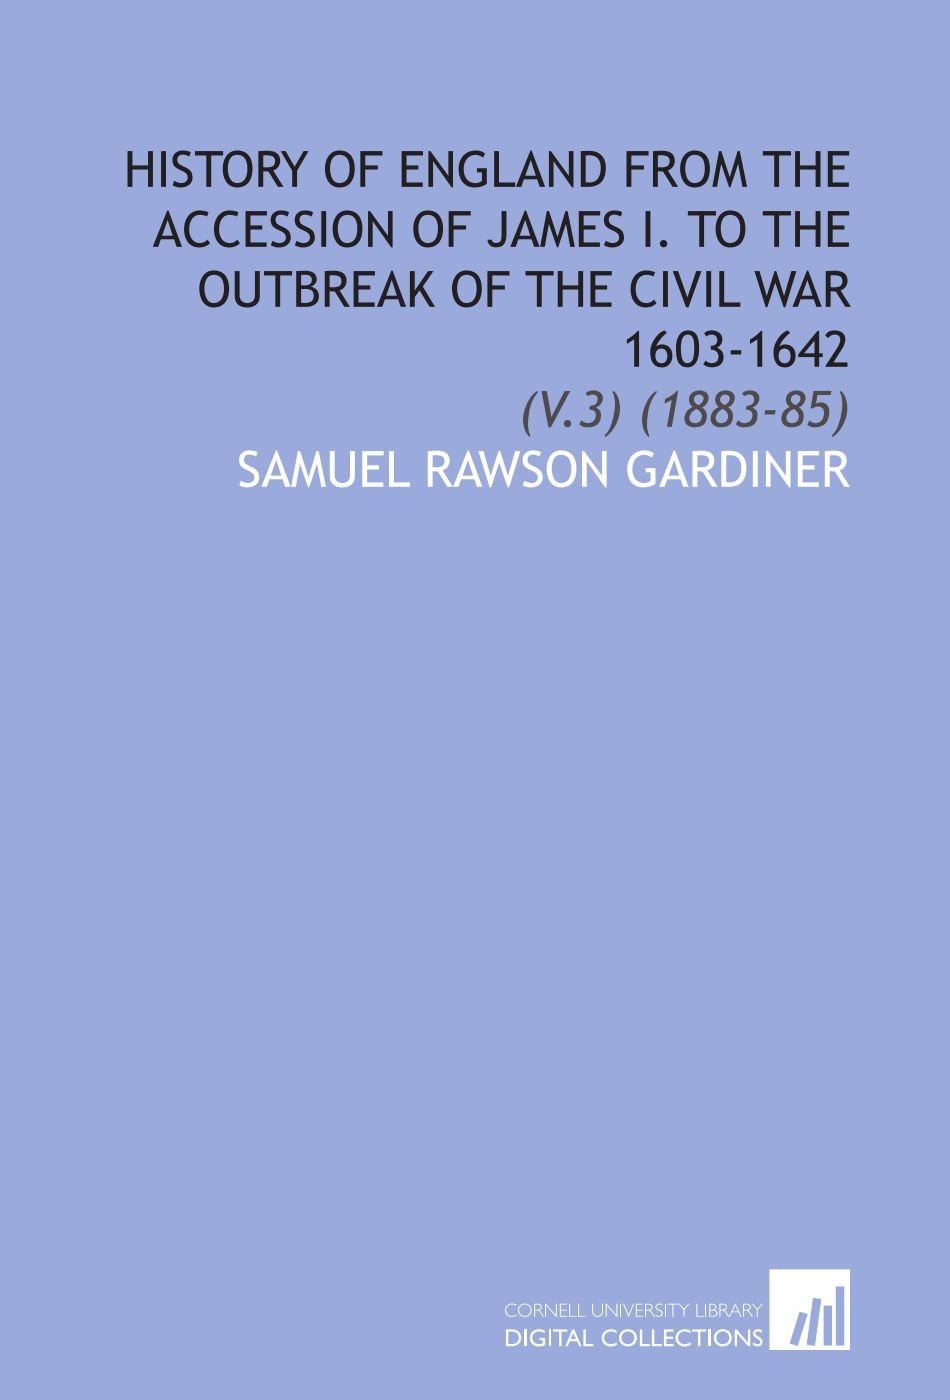 Download History of England From the Accession of James I. To the Outbreak of the Civil War 1603-1642: (V.3) (1883-85) PDF